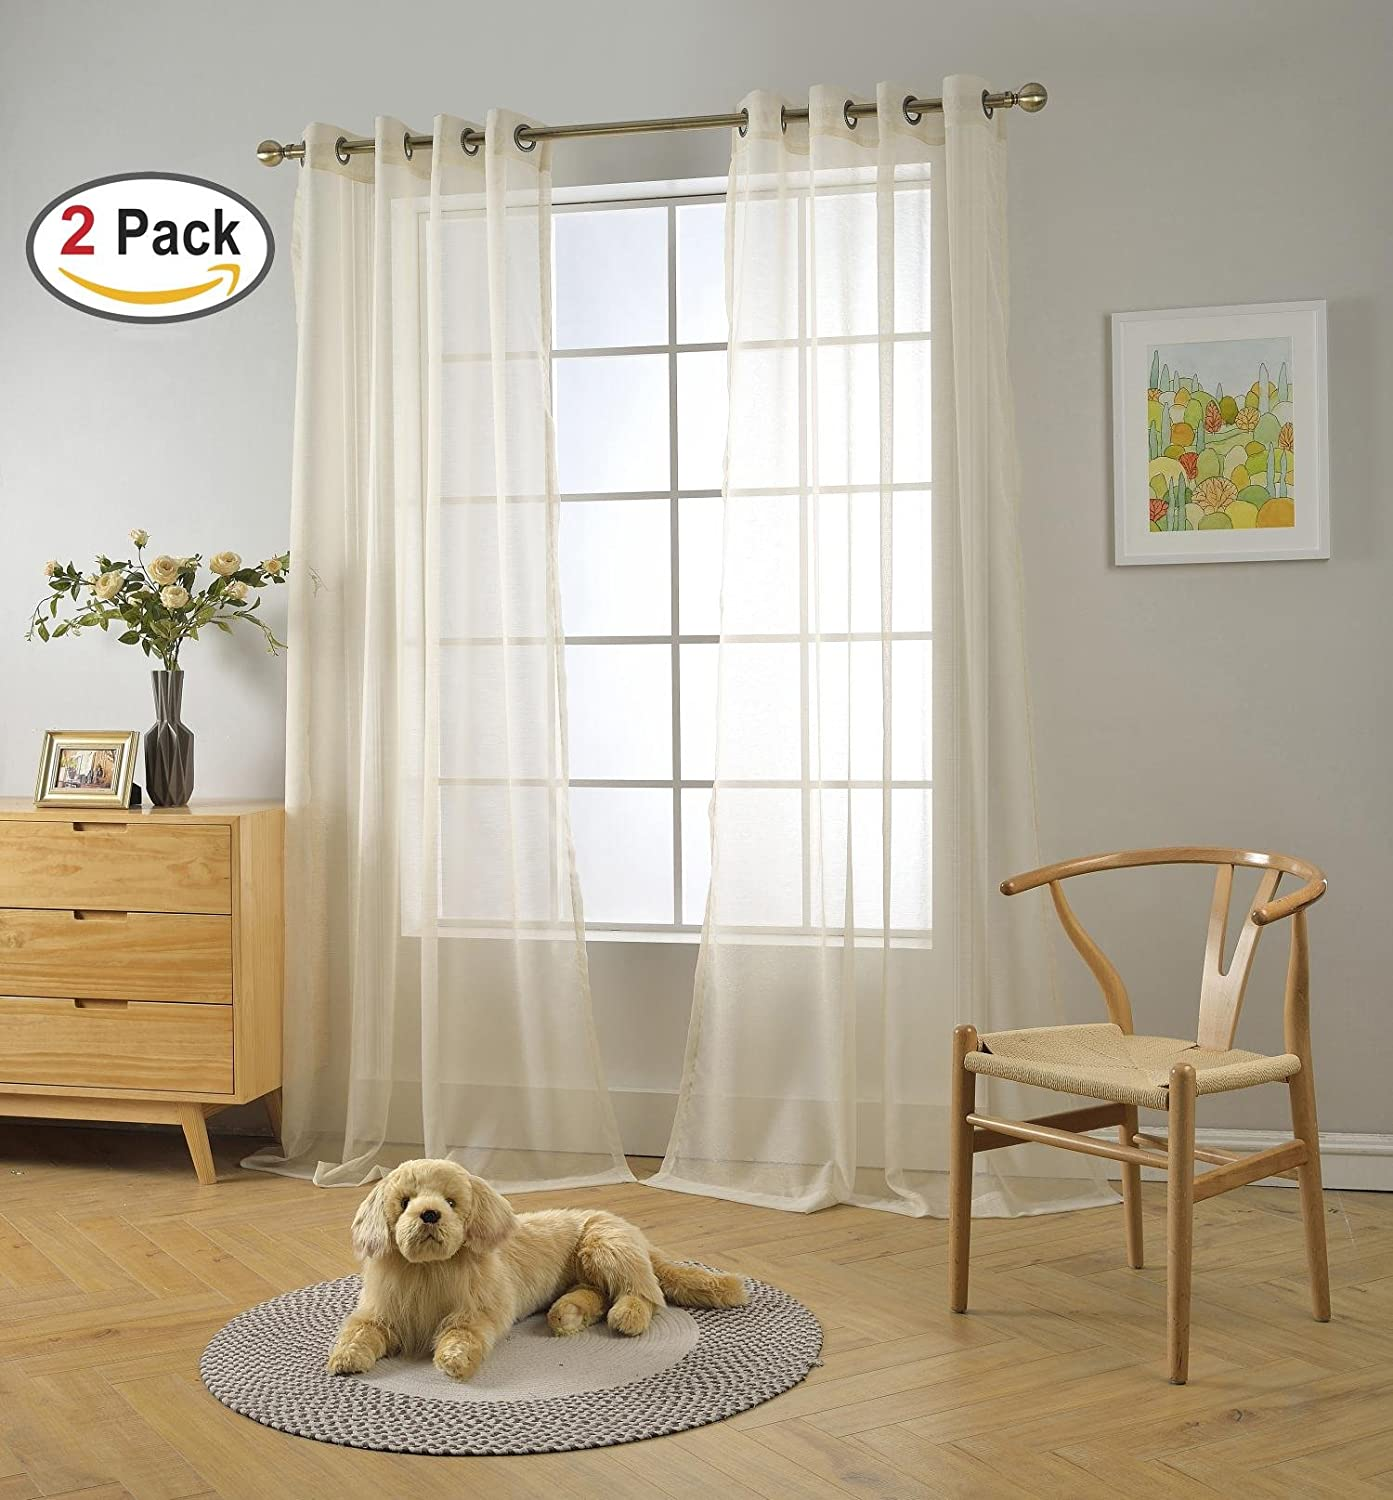 Miuco 2 Panels Grommet Textured Solid Sheer Curtains 95 Inches Long for Doors Beige